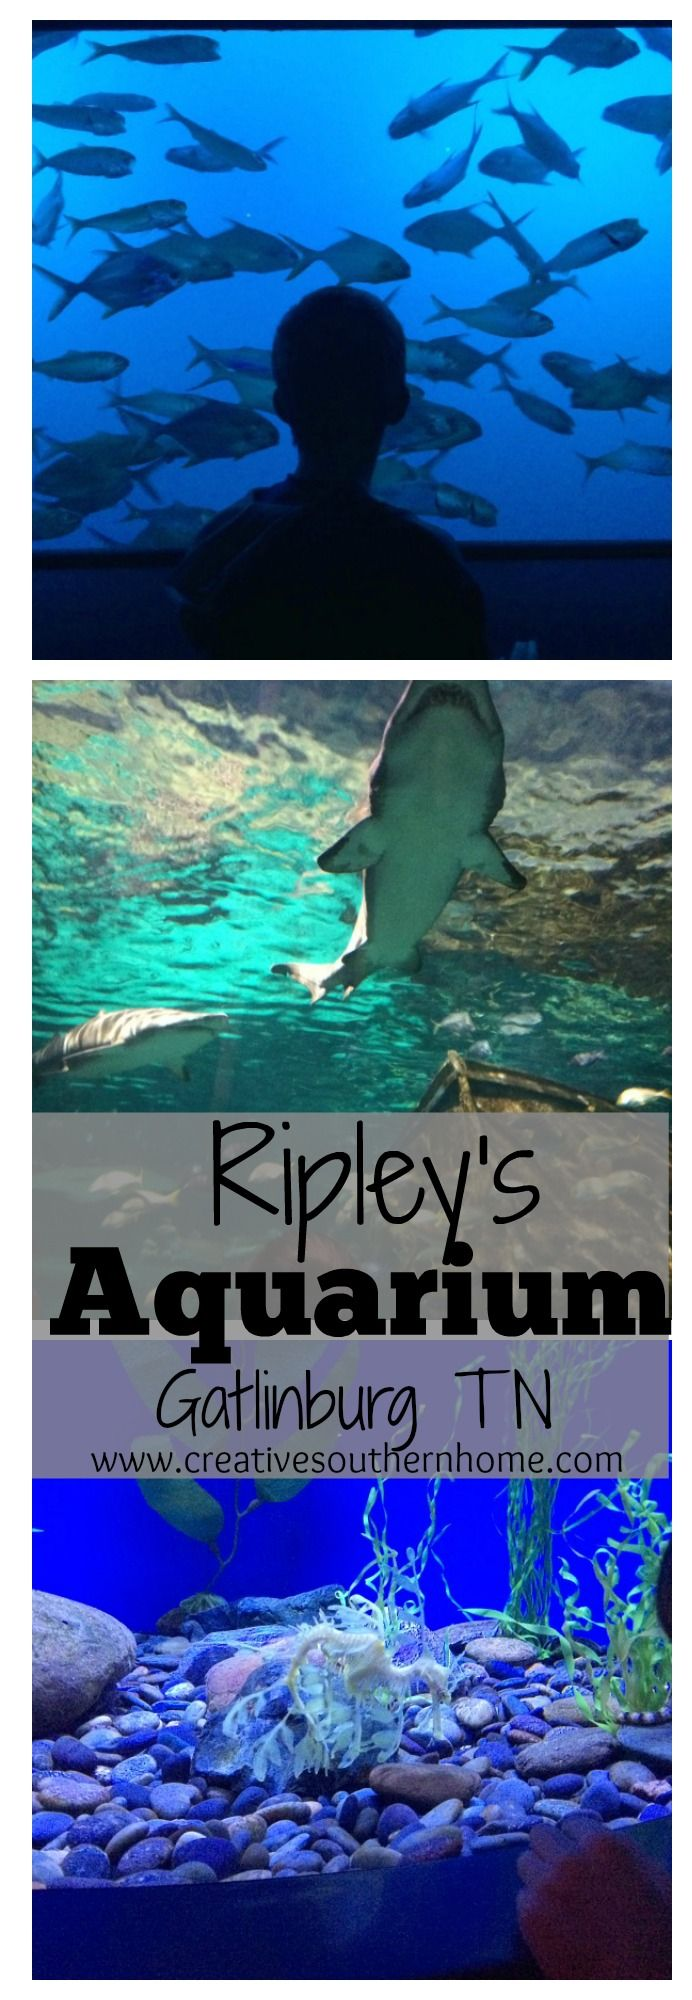 Ripley's Aquarium in Gatlinburg TN is a wonderful place to take the family to explore.  www.creativesouthernhome.com [ad]